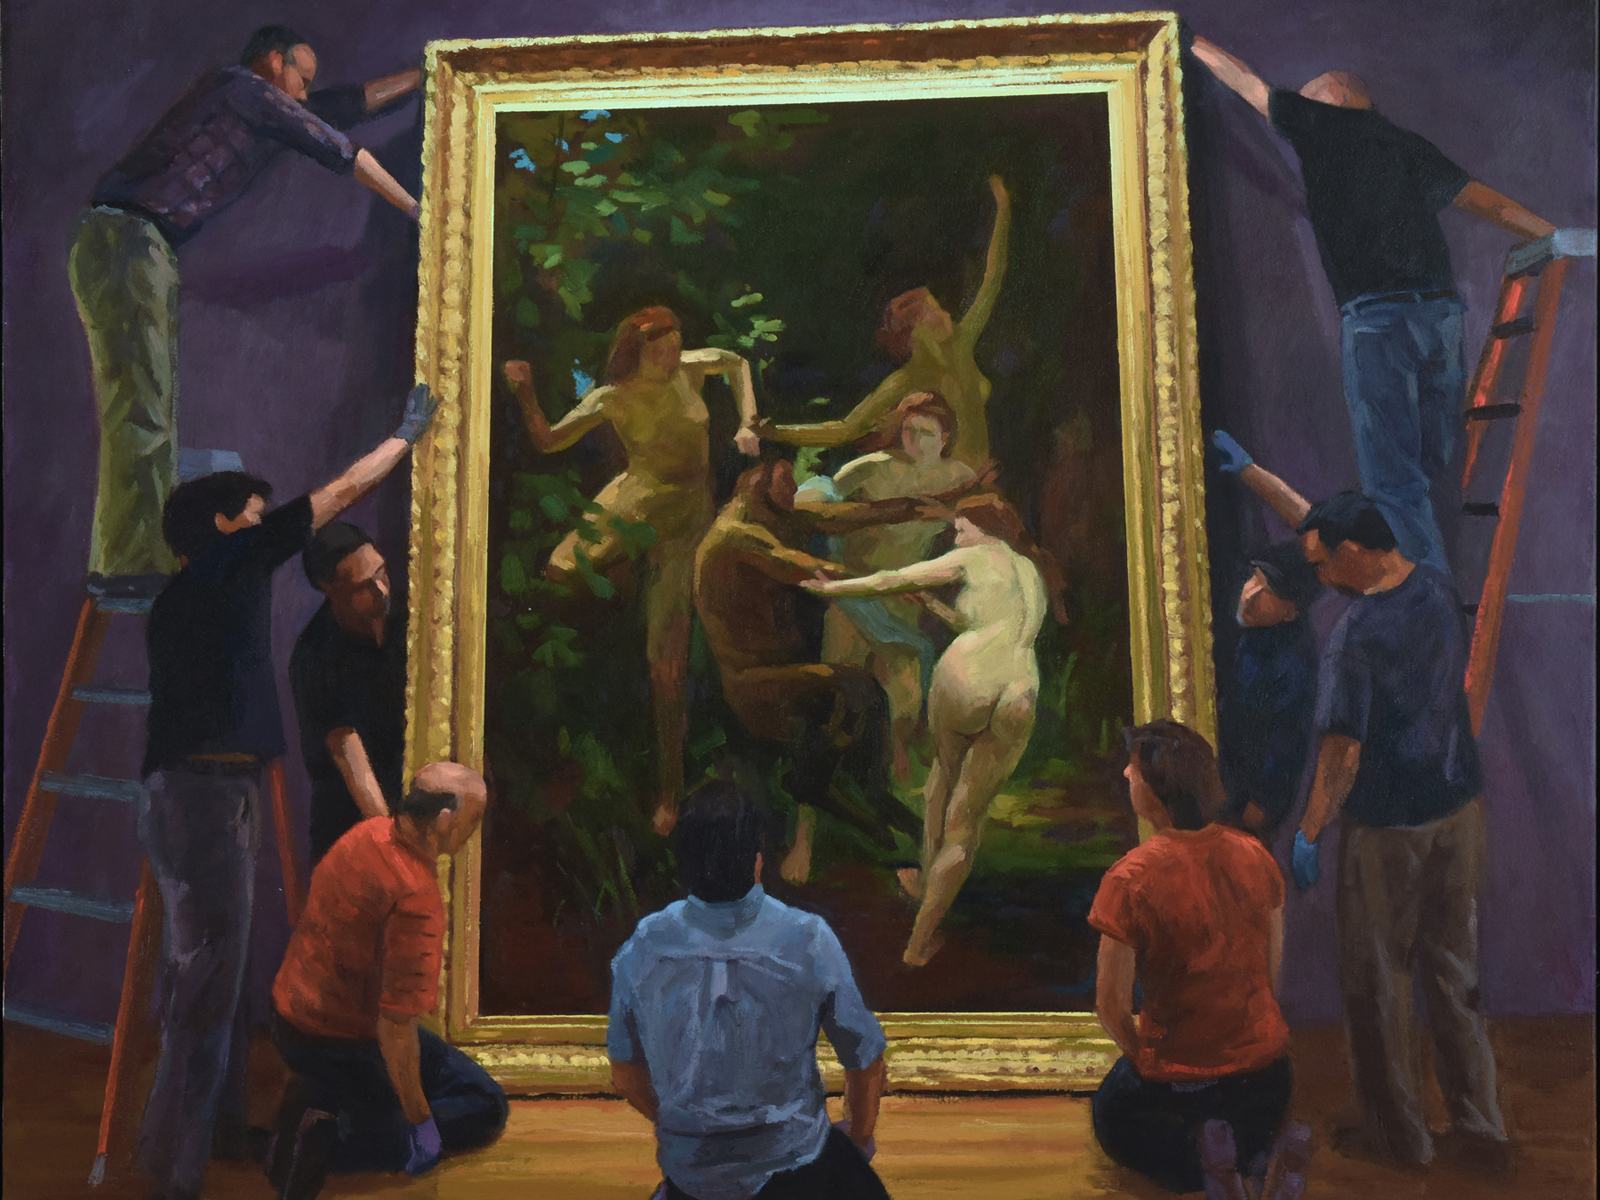 Frank Gregory, Preparators, Nymphs and a Satyr, 2016 Recipient